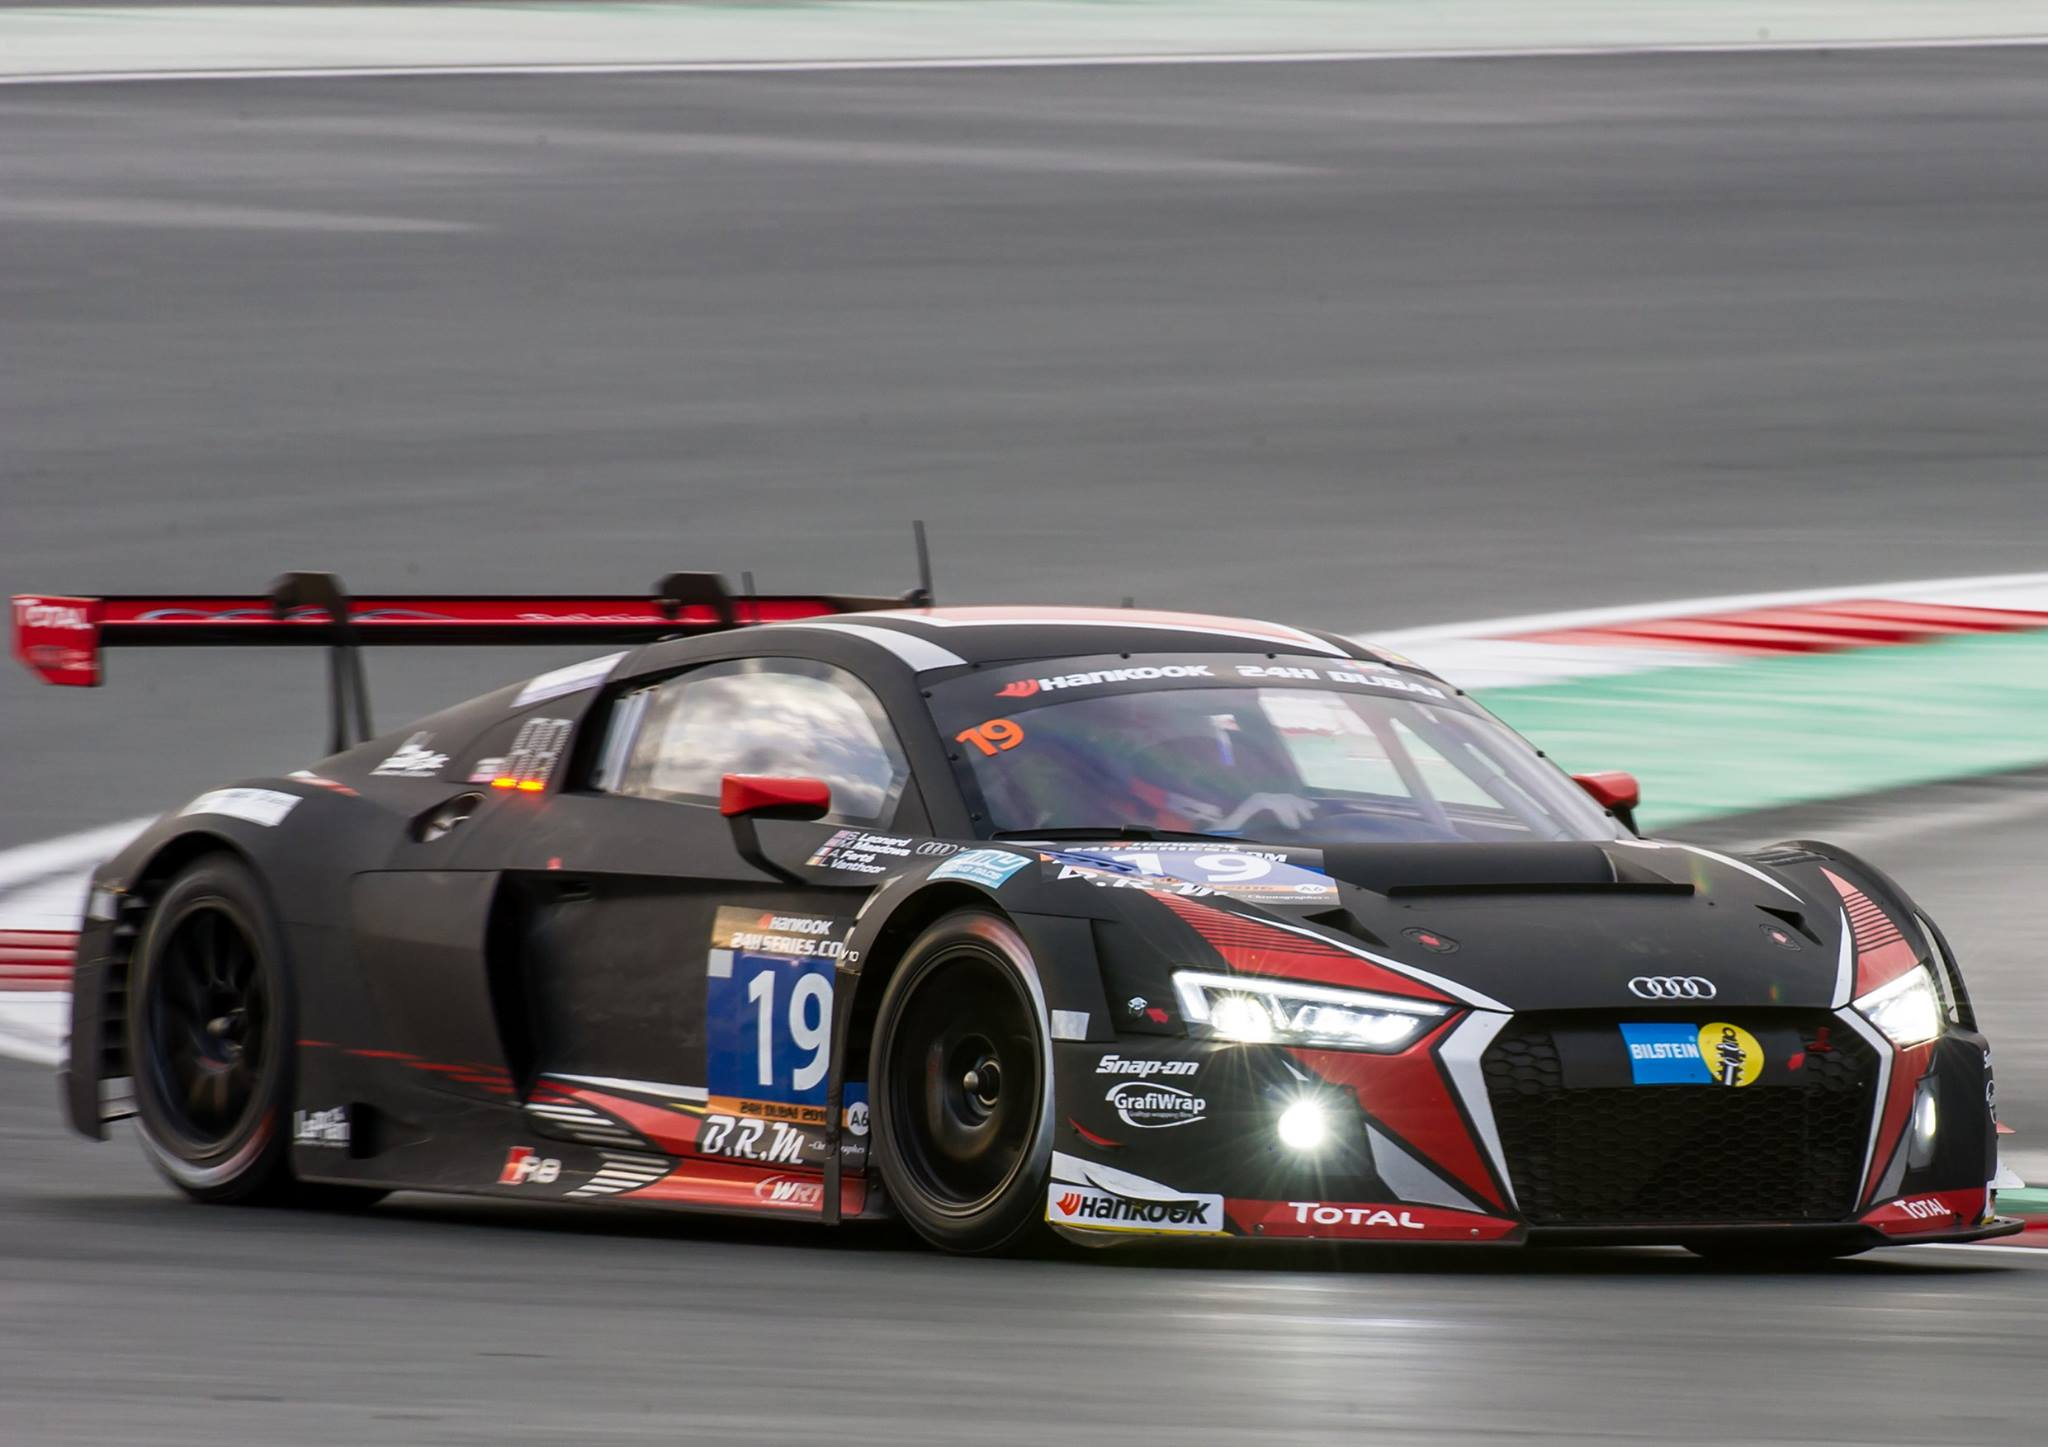 audi scores double podium victory at 24 hours of dubai gtspirit. Black Bedroom Furniture Sets. Home Design Ideas